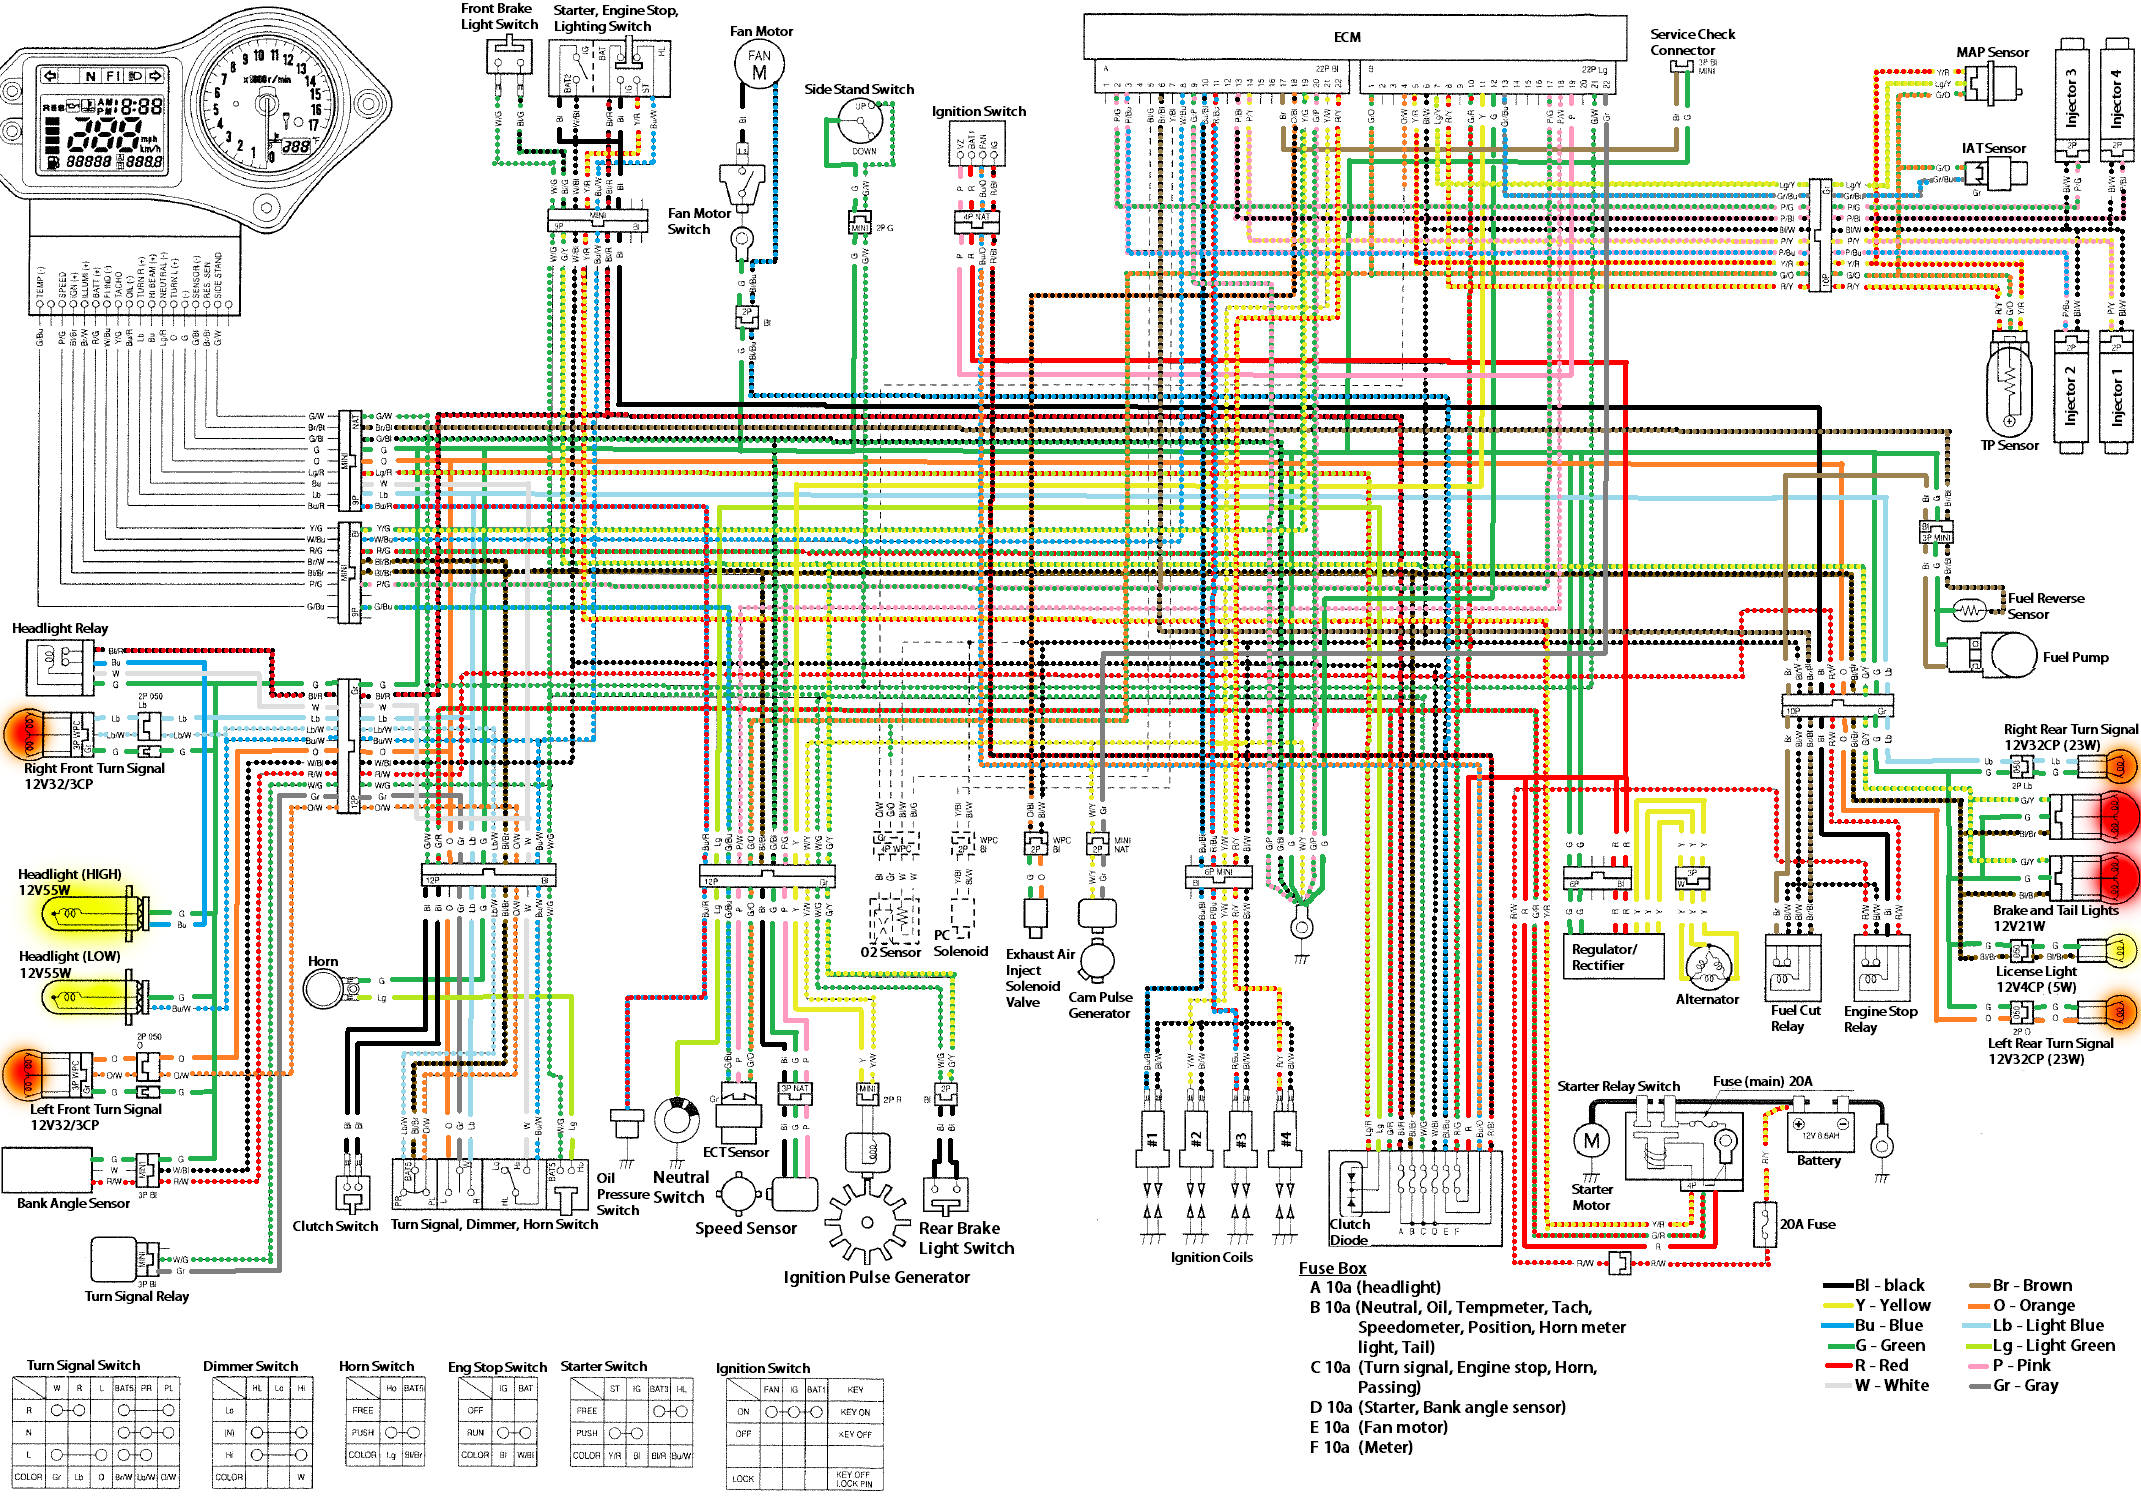 Wiring_diagram_cbr600f4i_2001 2003_color cbr 600 wiring diagram 2013 honda cbr \u2022 wiring diagrams  at nearapp.co